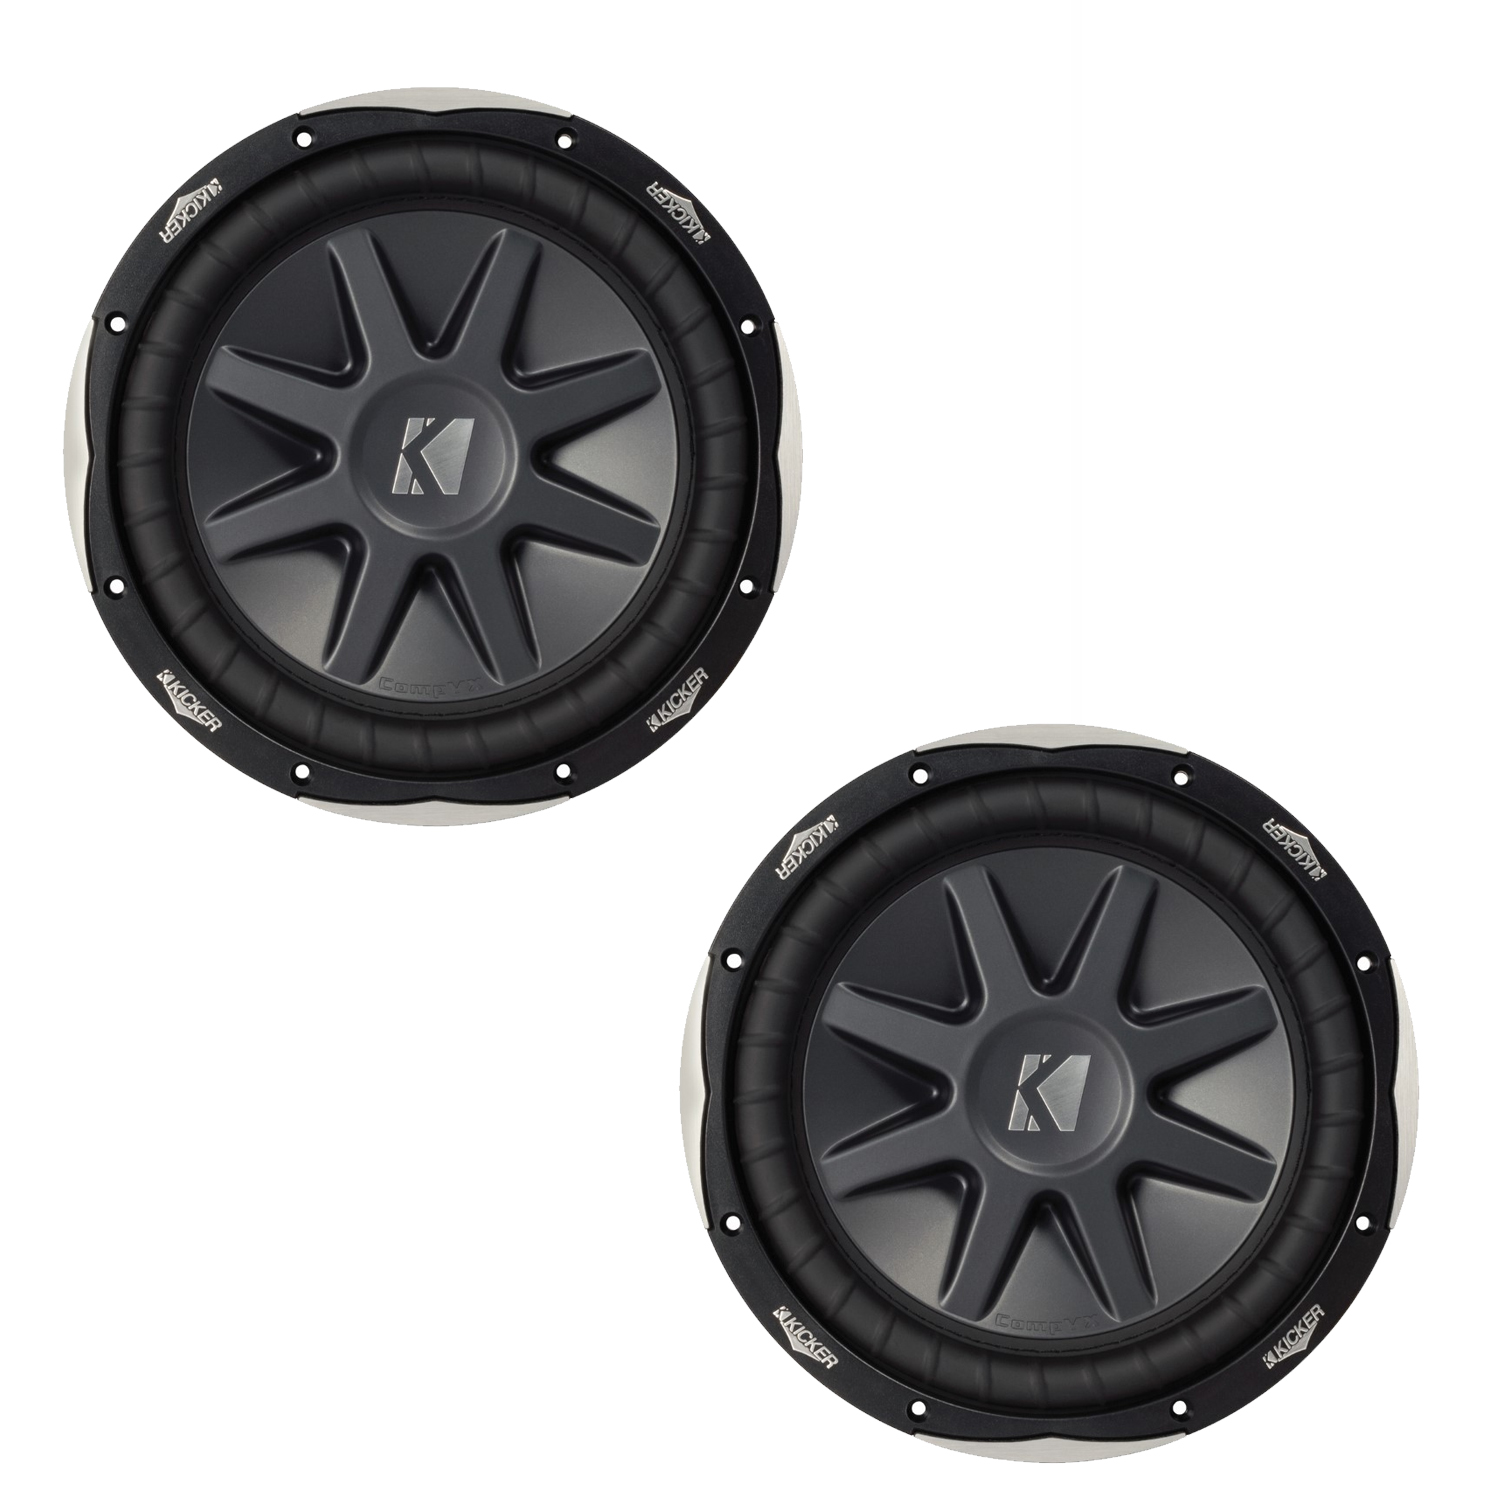 Kicker 10cvx102 Cvx 10 Subs Dual 2 Ohm Voice Coils For Wiring To How Wire 4 Coil Harness Compvx Subwoofers Bundle A Monoblock Amplifier